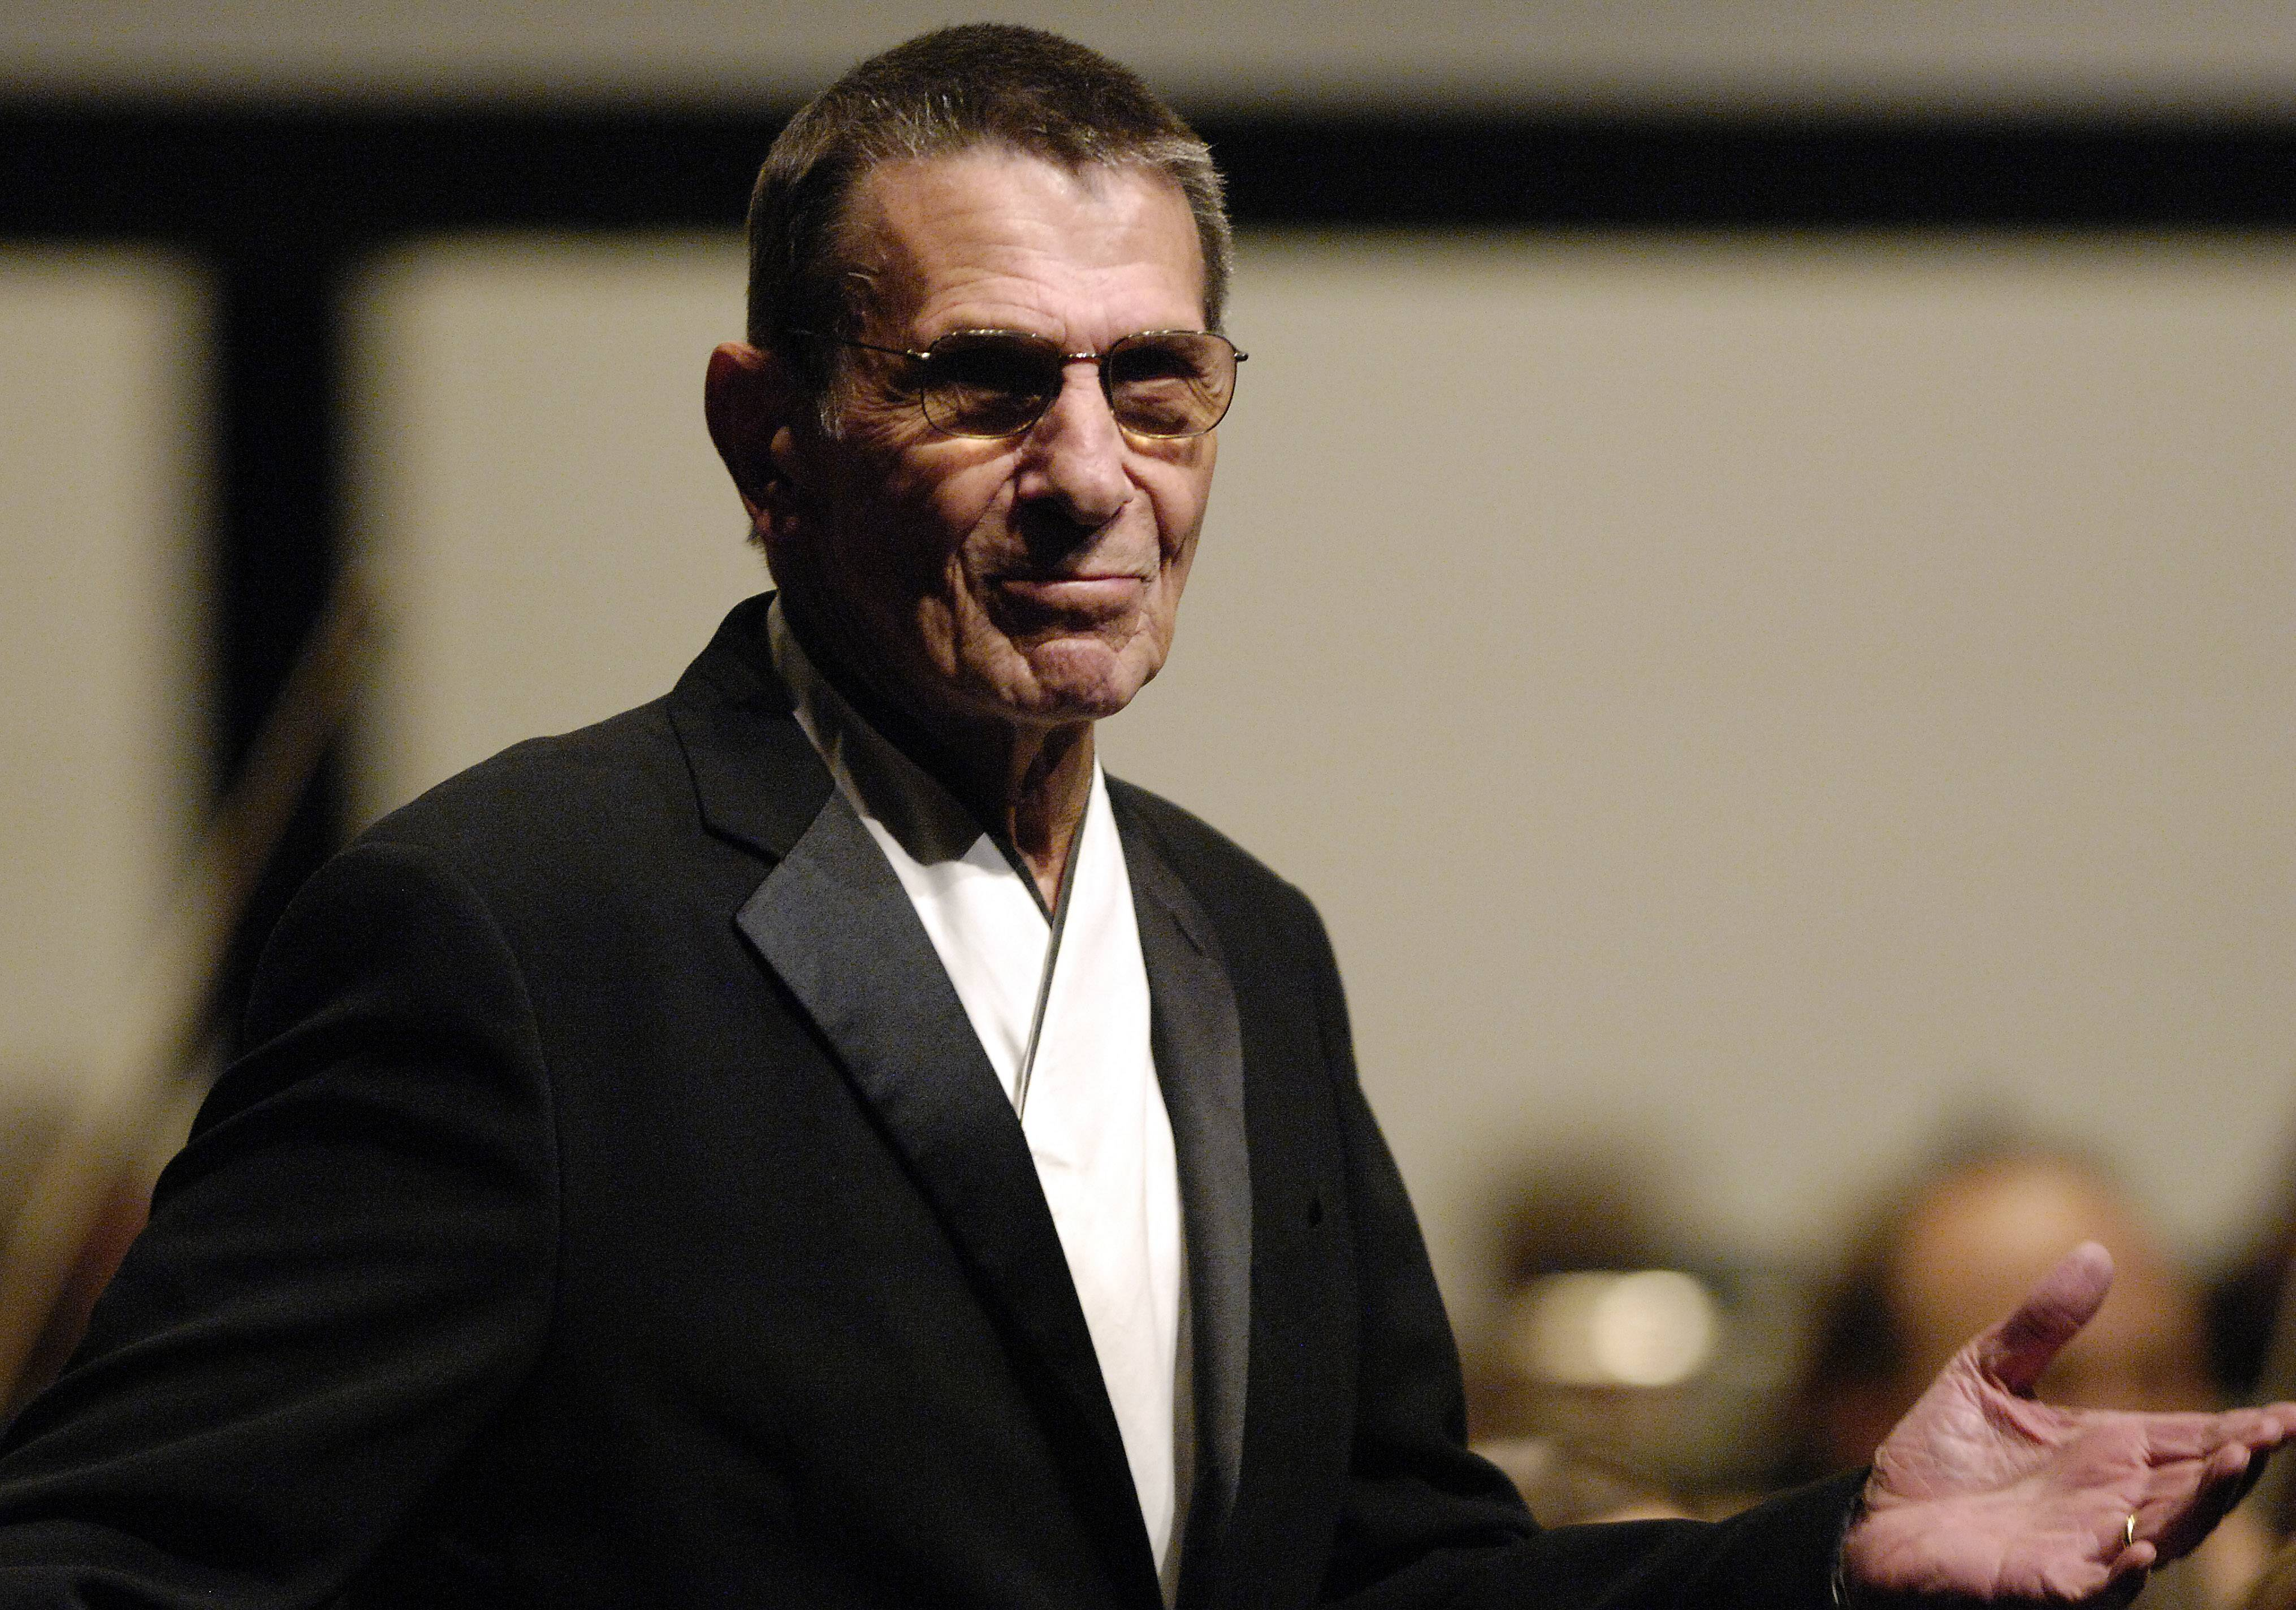 Leonard Nimoy was the special guest at the Elgin Symphony Orchestra's season opening gala in 2008.